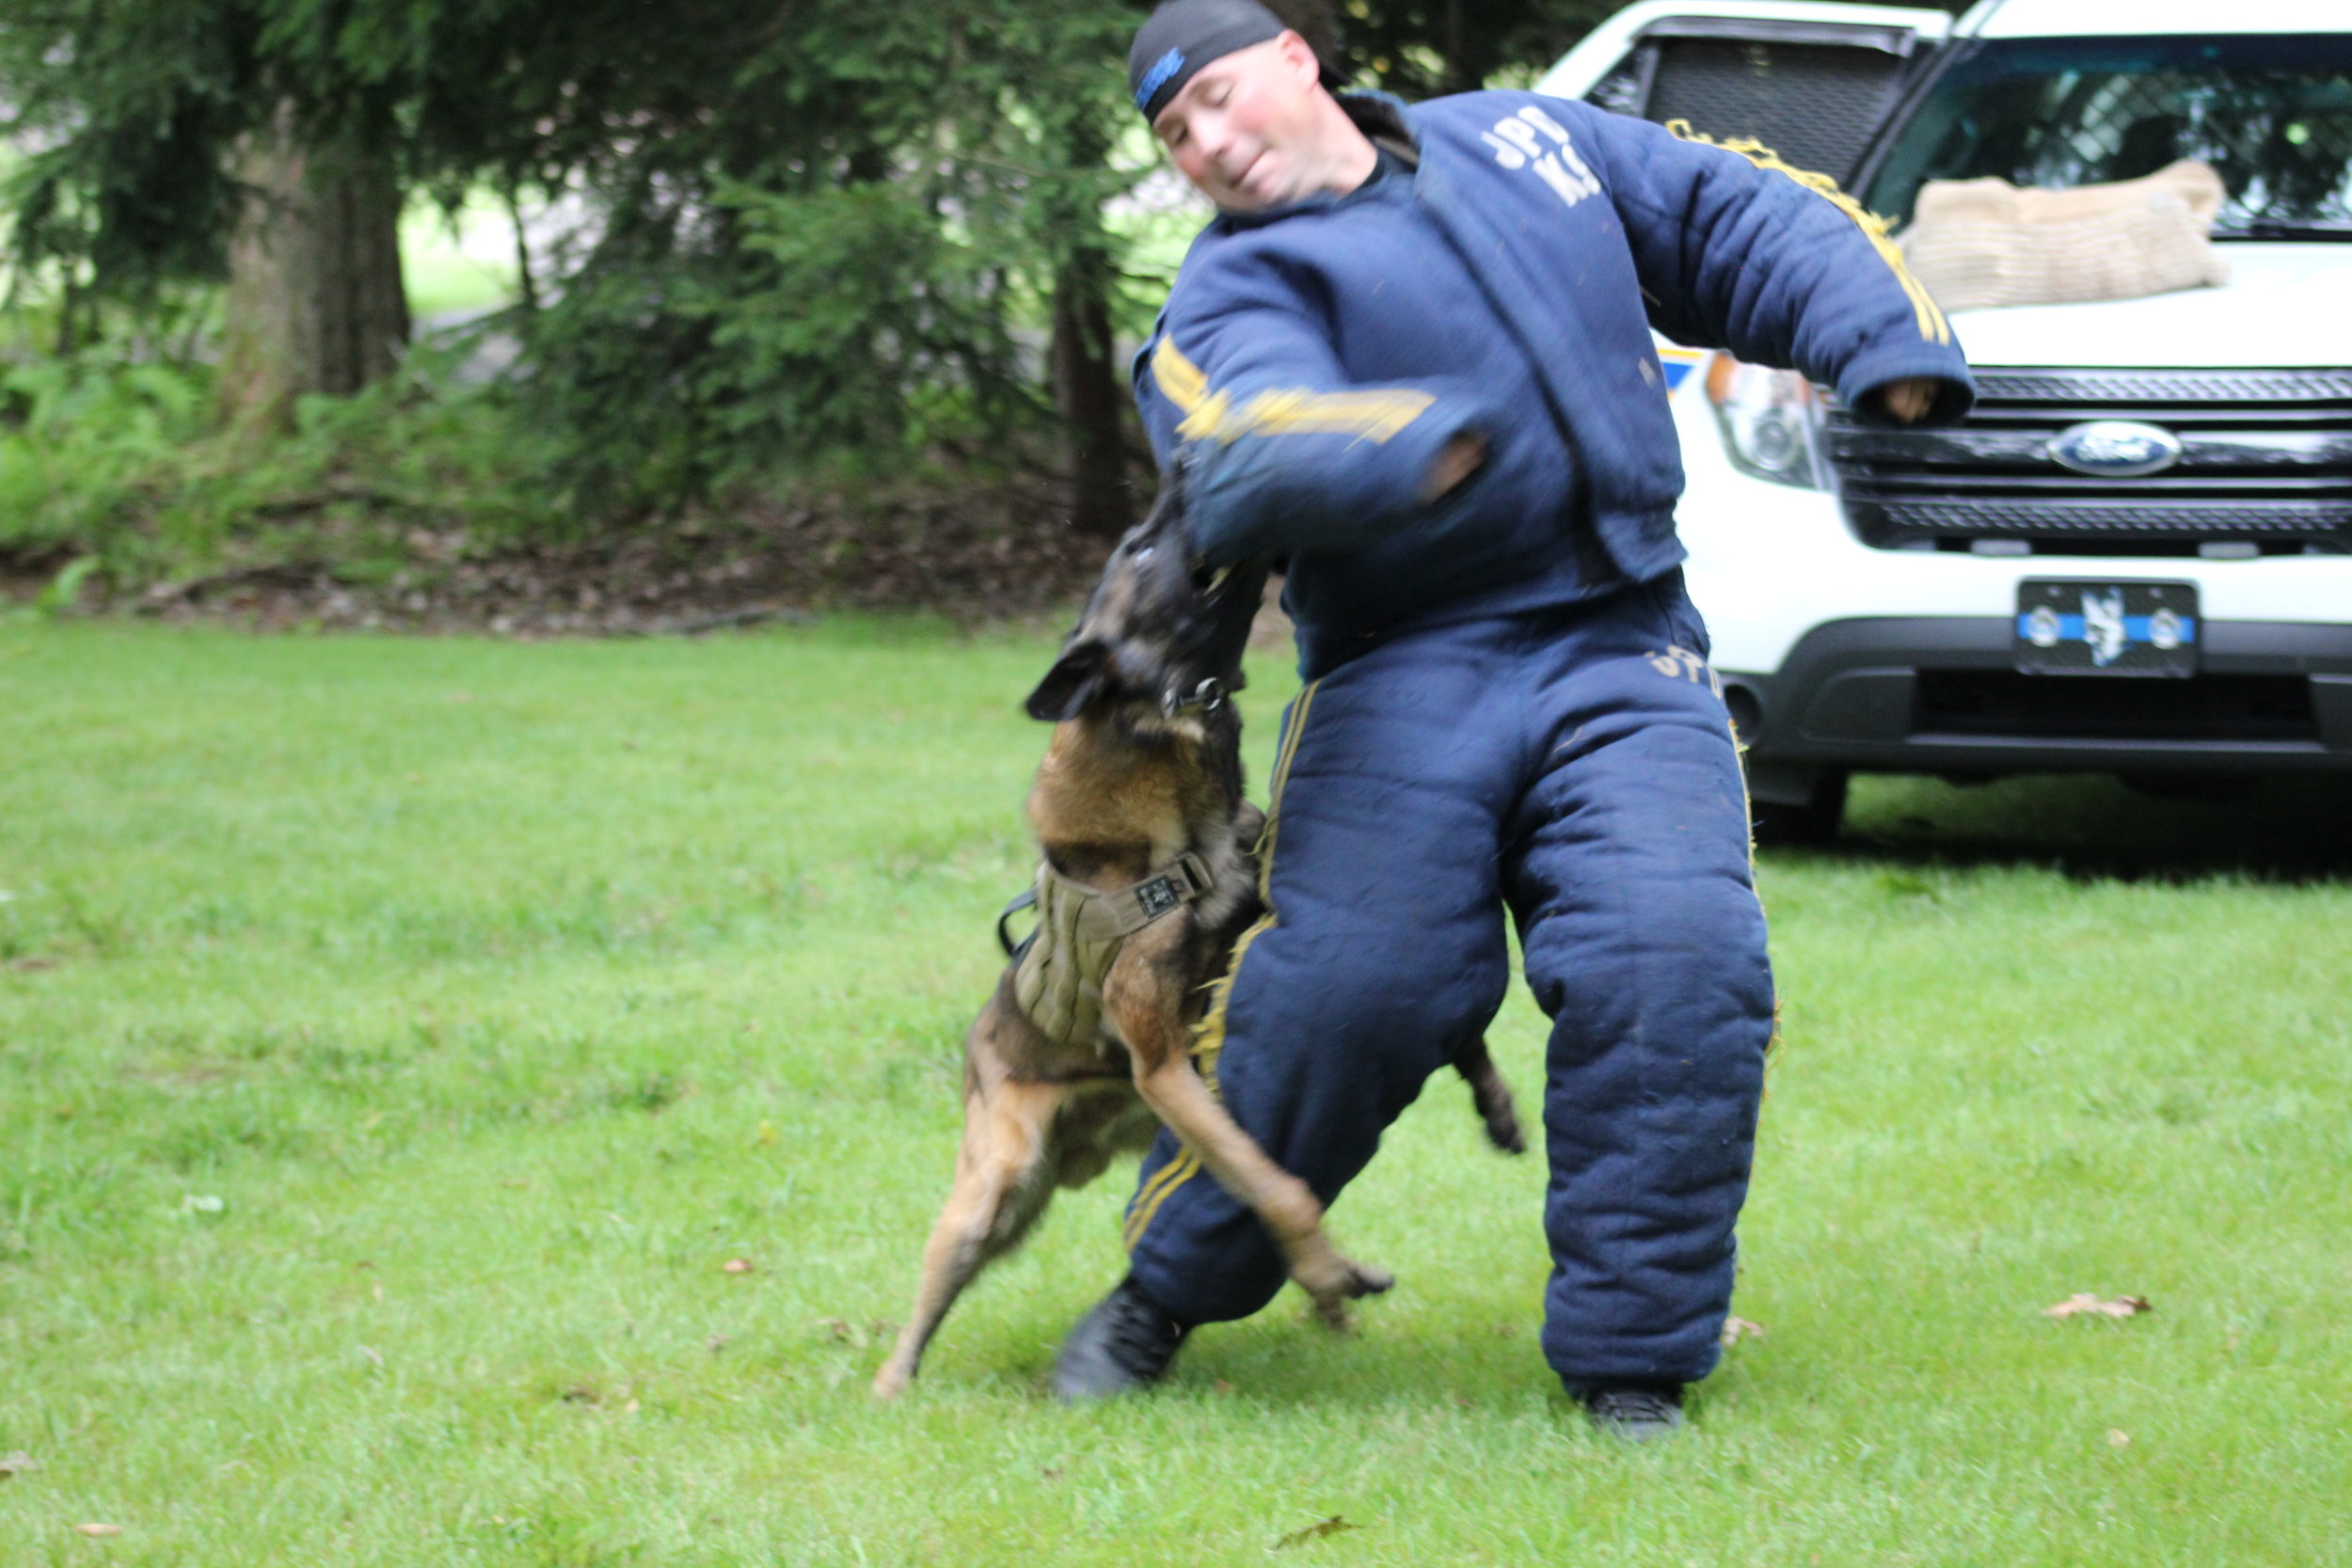 K9 Demo - by Johnstown Police Dept.